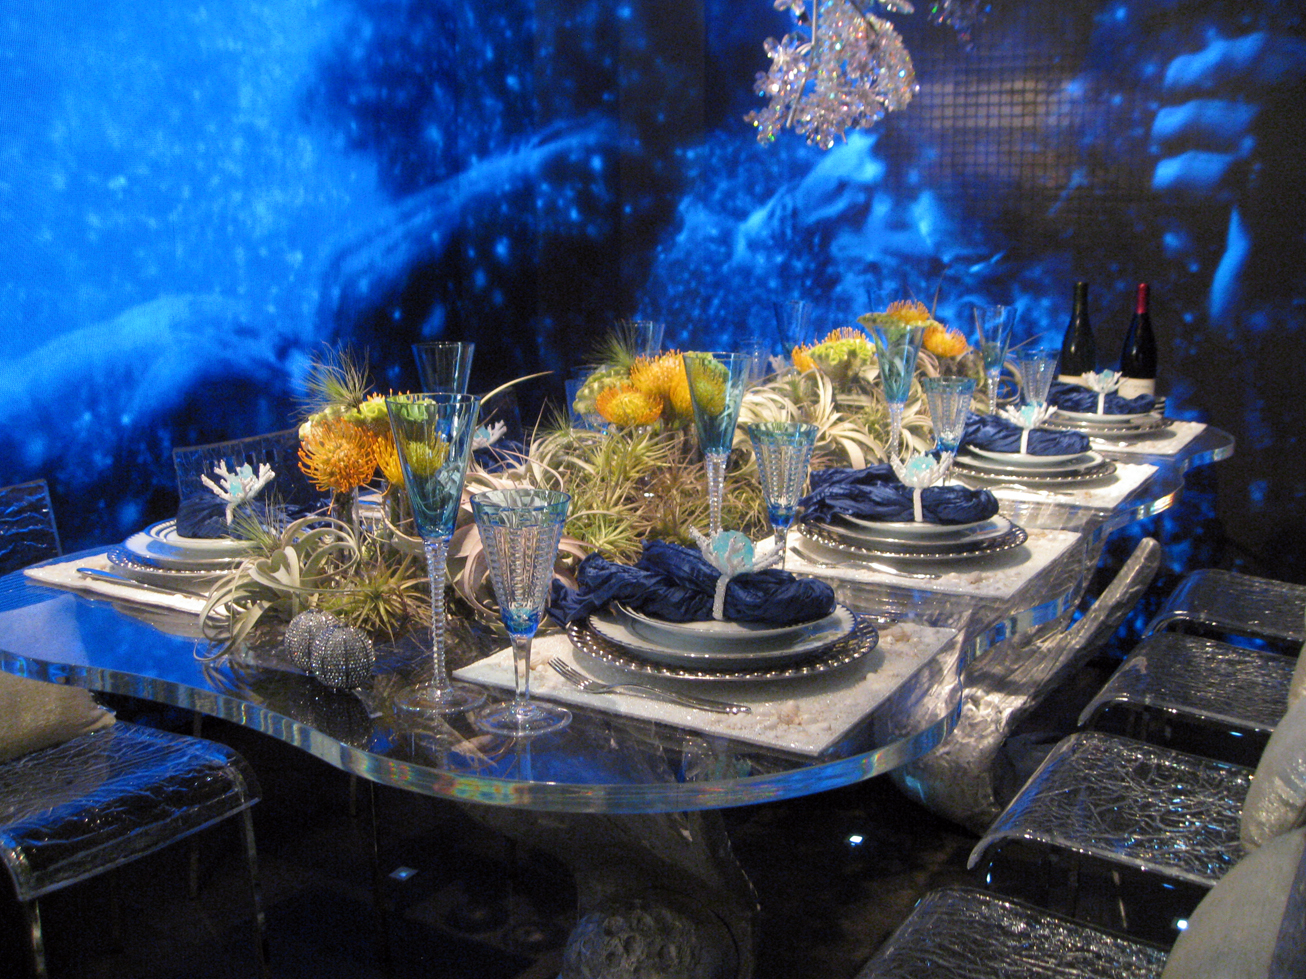 diffa s fabulous dining by design showcase is a highlight of home new york one of the highlights of the architectural digest home design show is the dining by design installations featuring glamourous dining